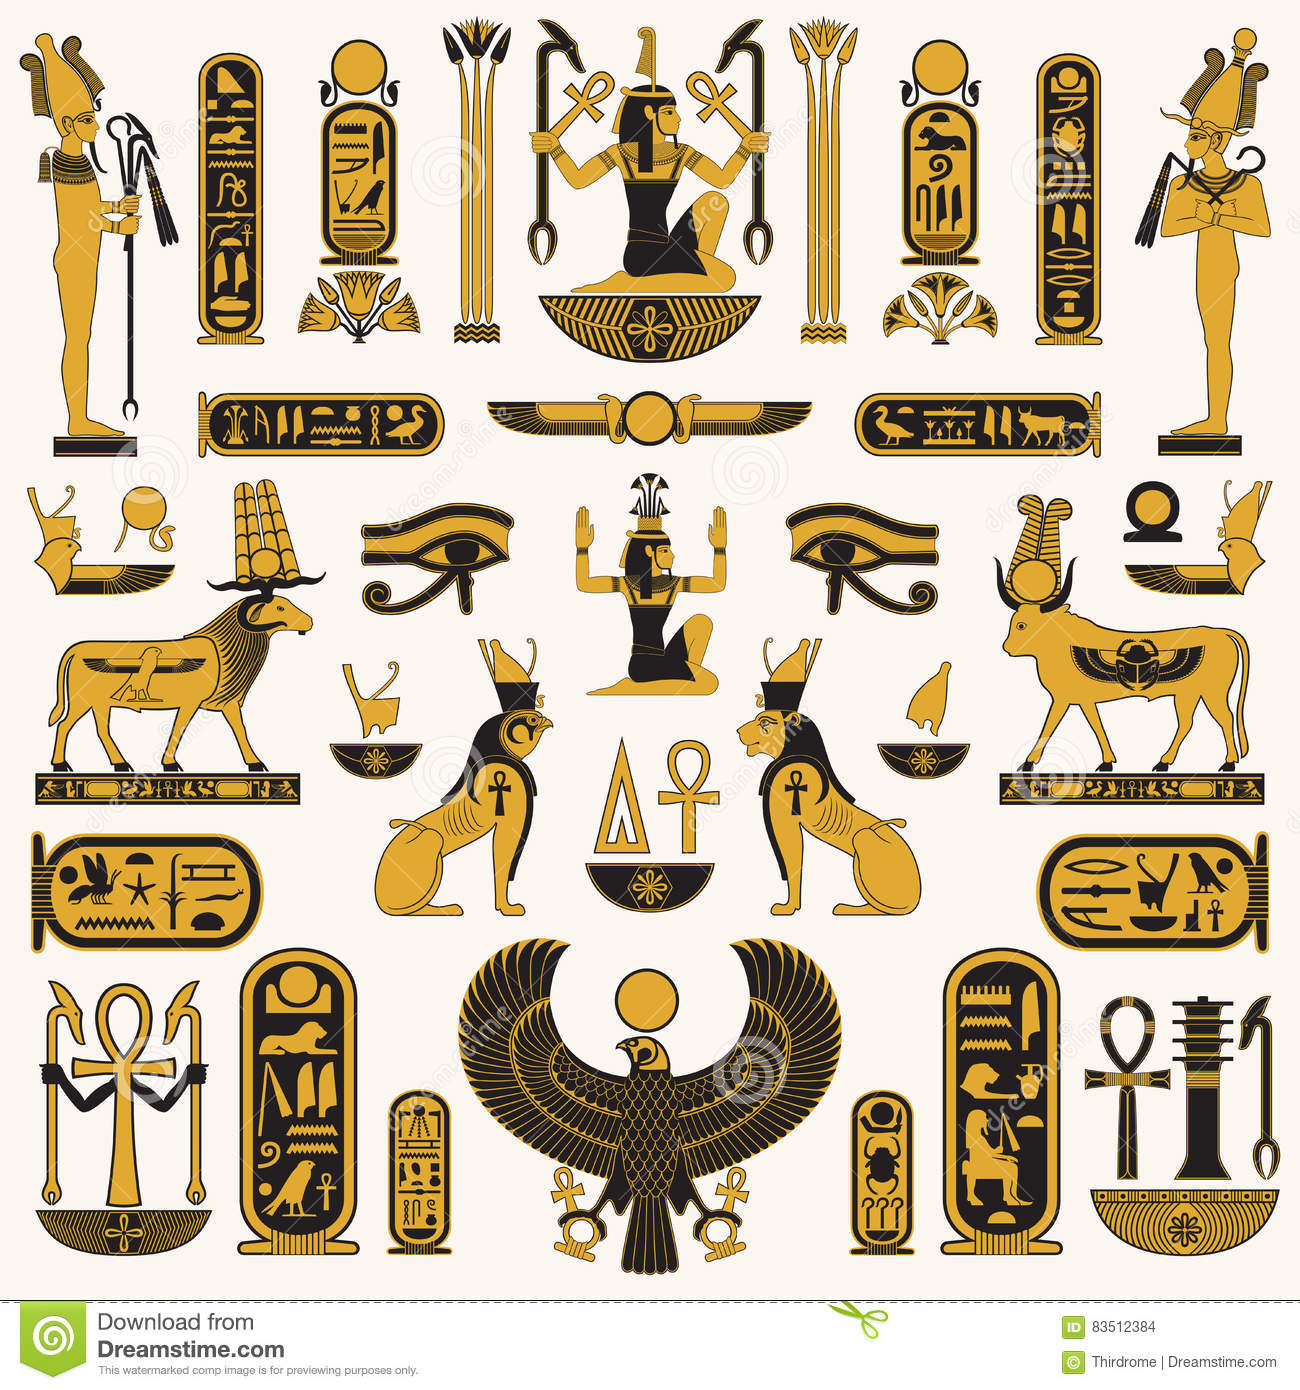 Ancient egyptian symbols stock vector illustration of decorative ancient egyptian symbols biocorpaavc